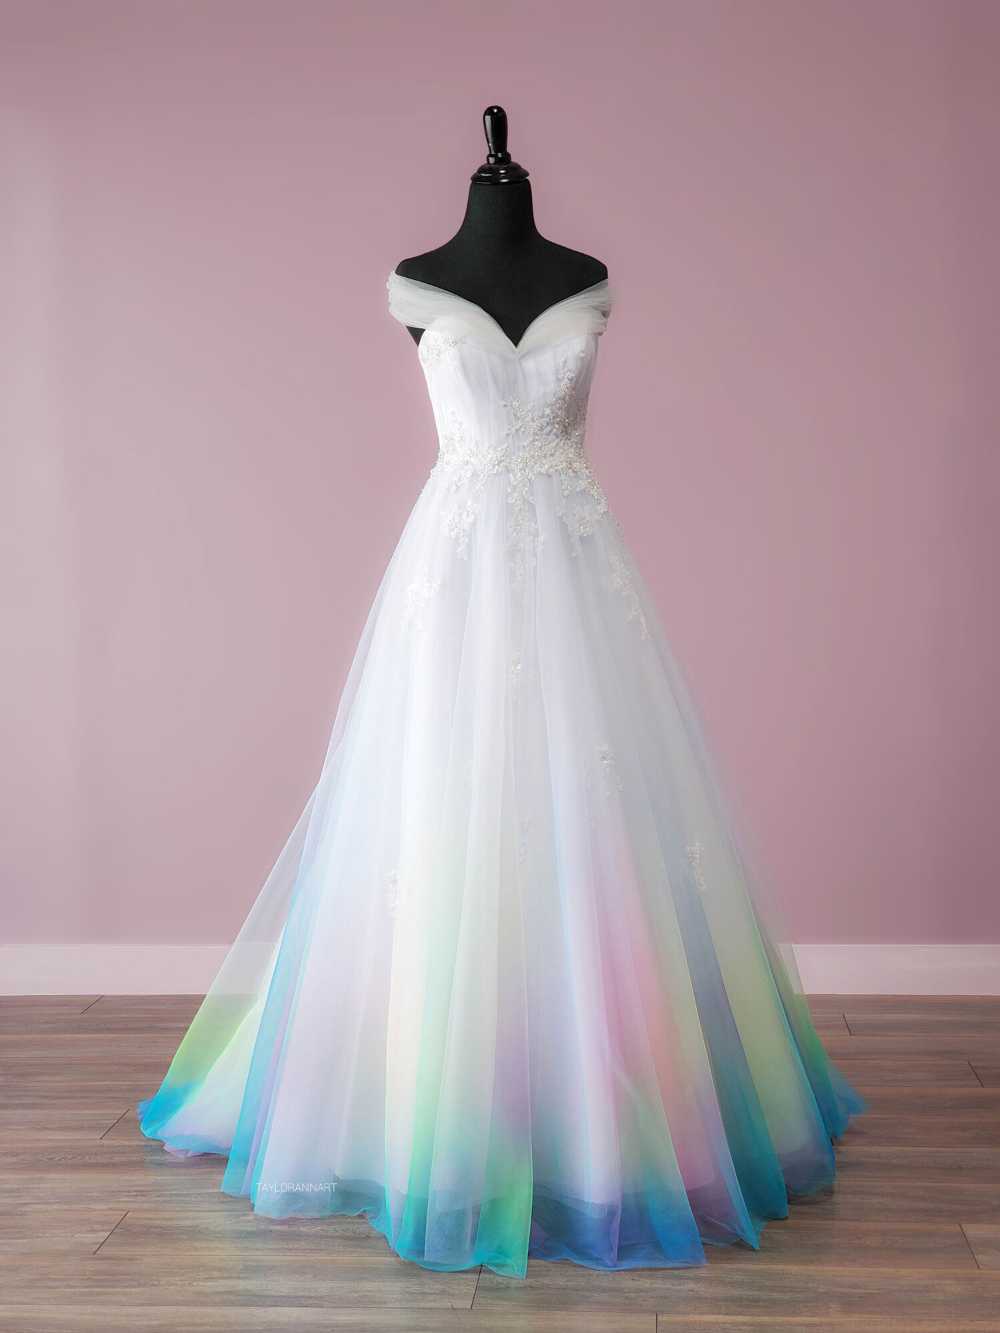 Wedding Dress Inspired By A Bubble Dresses Ombre Wedding Dress Ball Gowns [ 1333 x 1000 Pixel ]